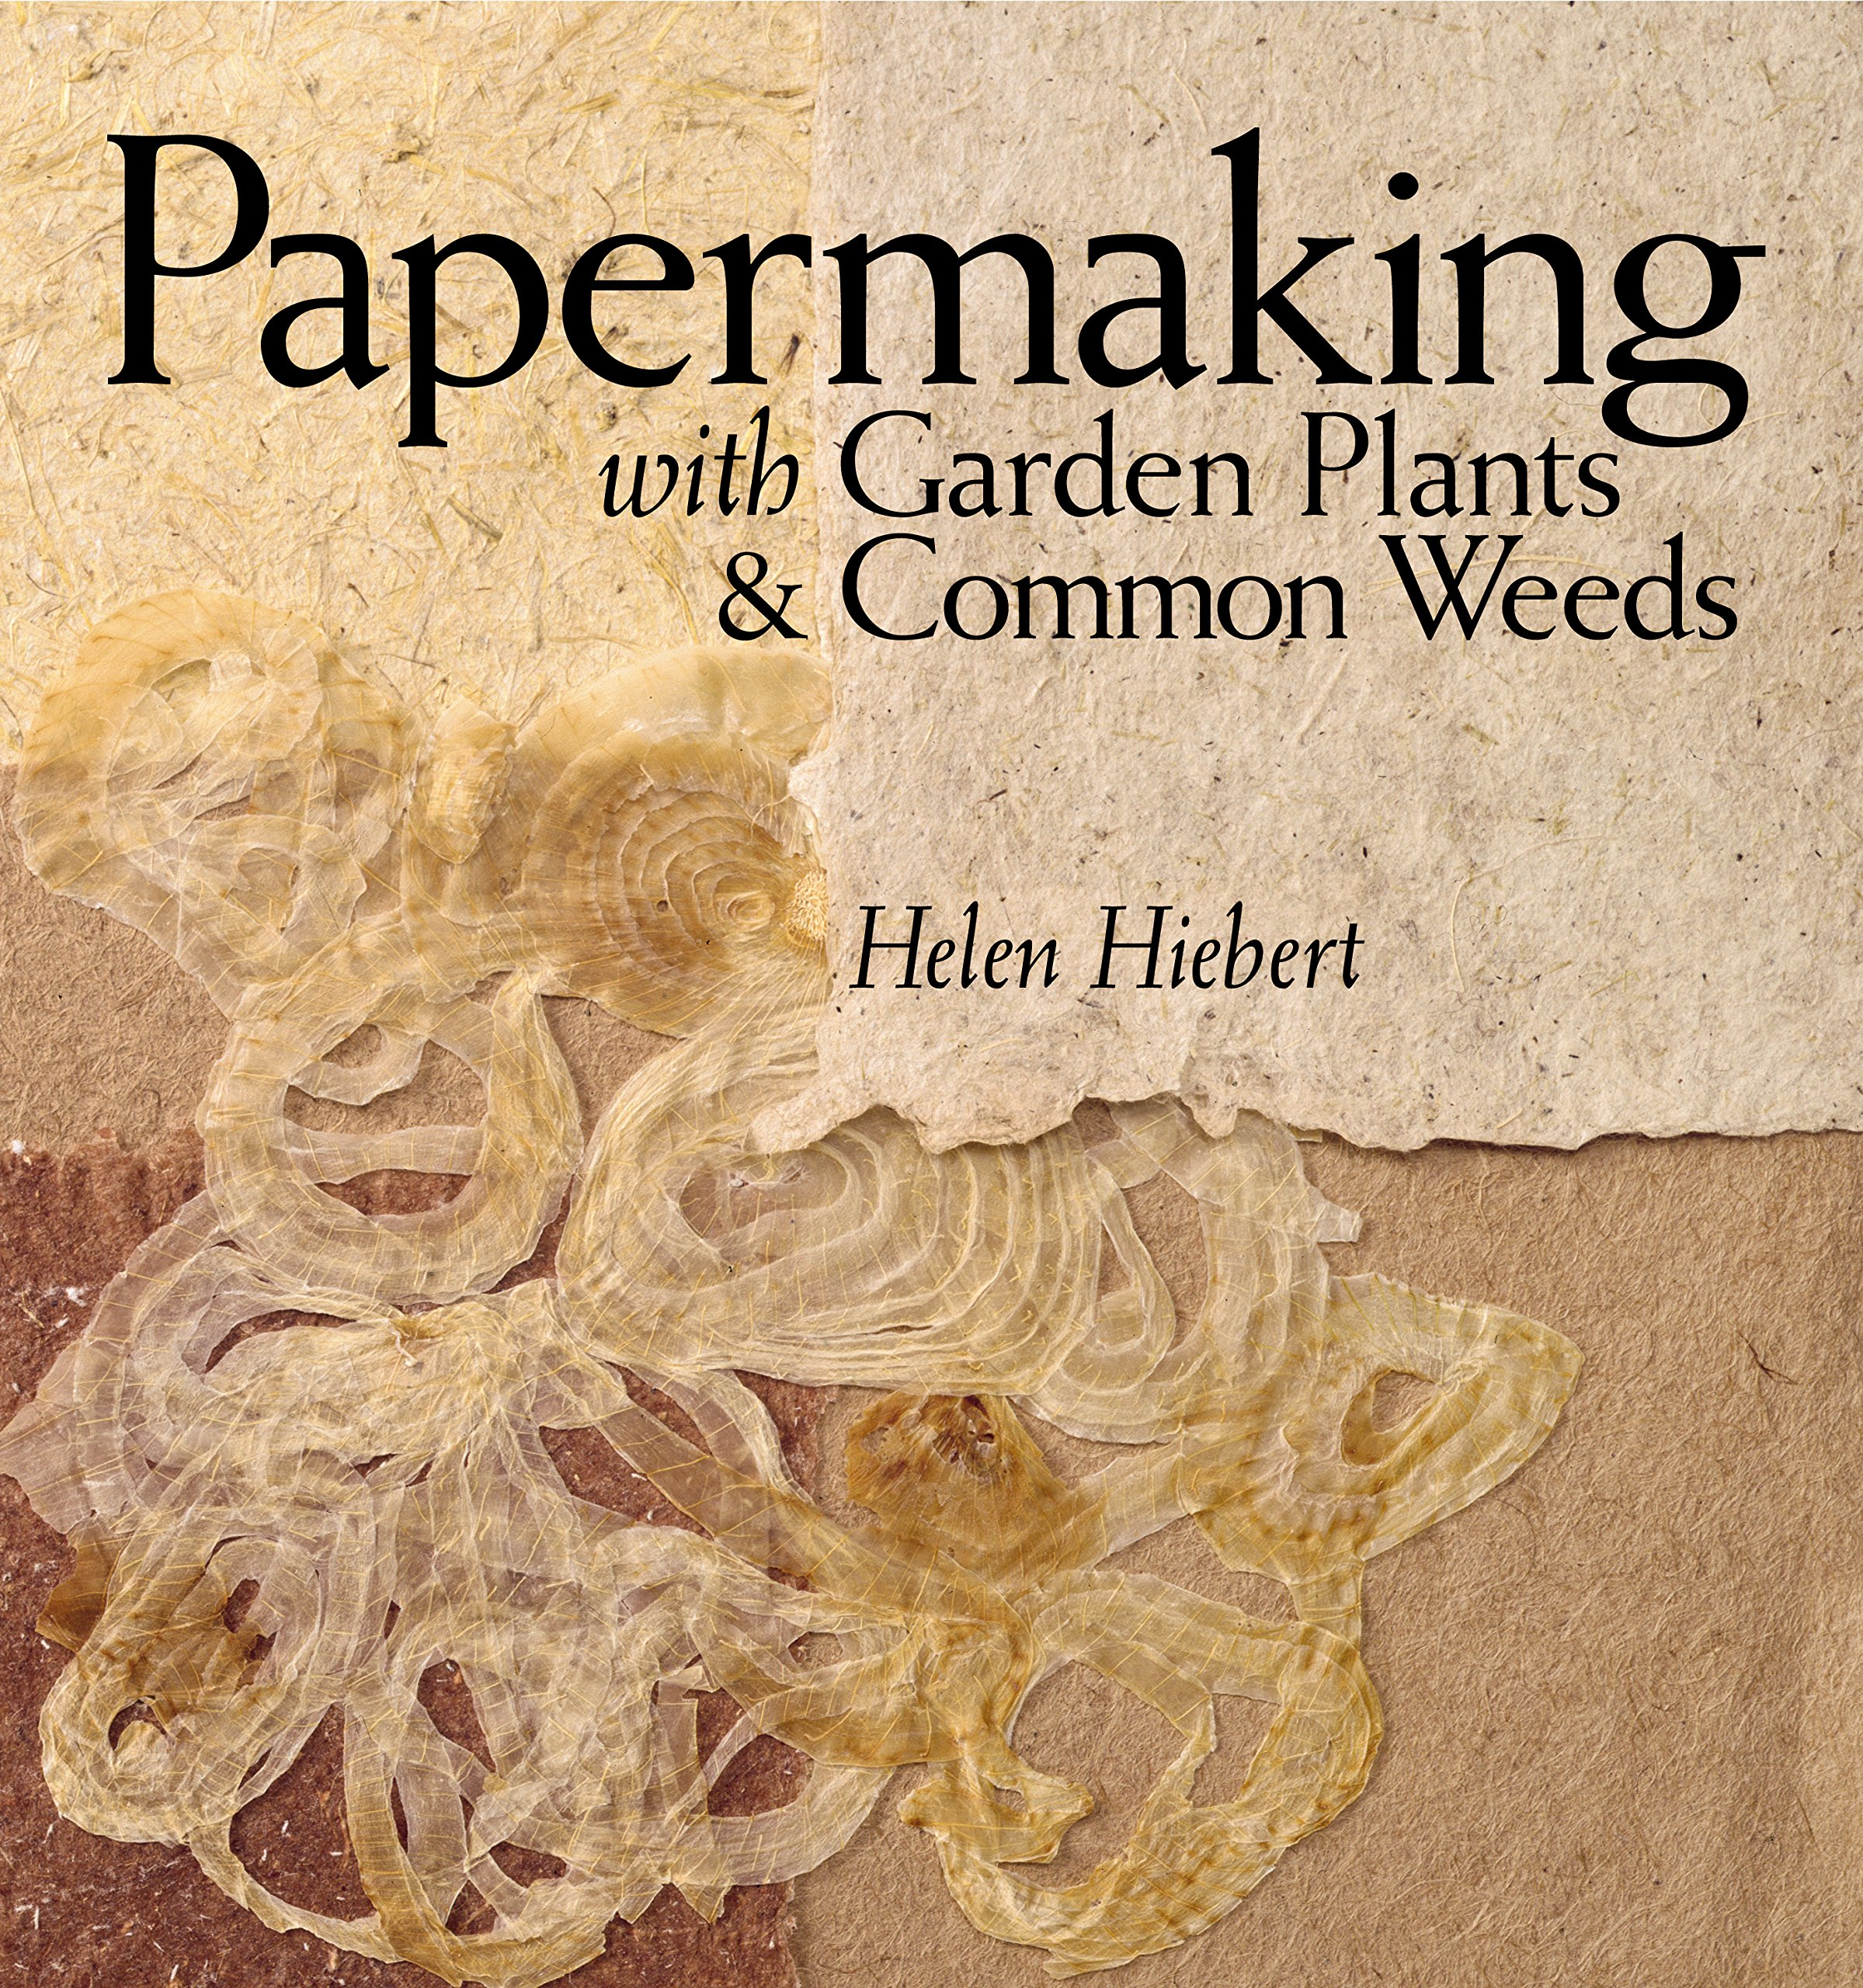 Papermaking Garden Plants Common Weeds product image